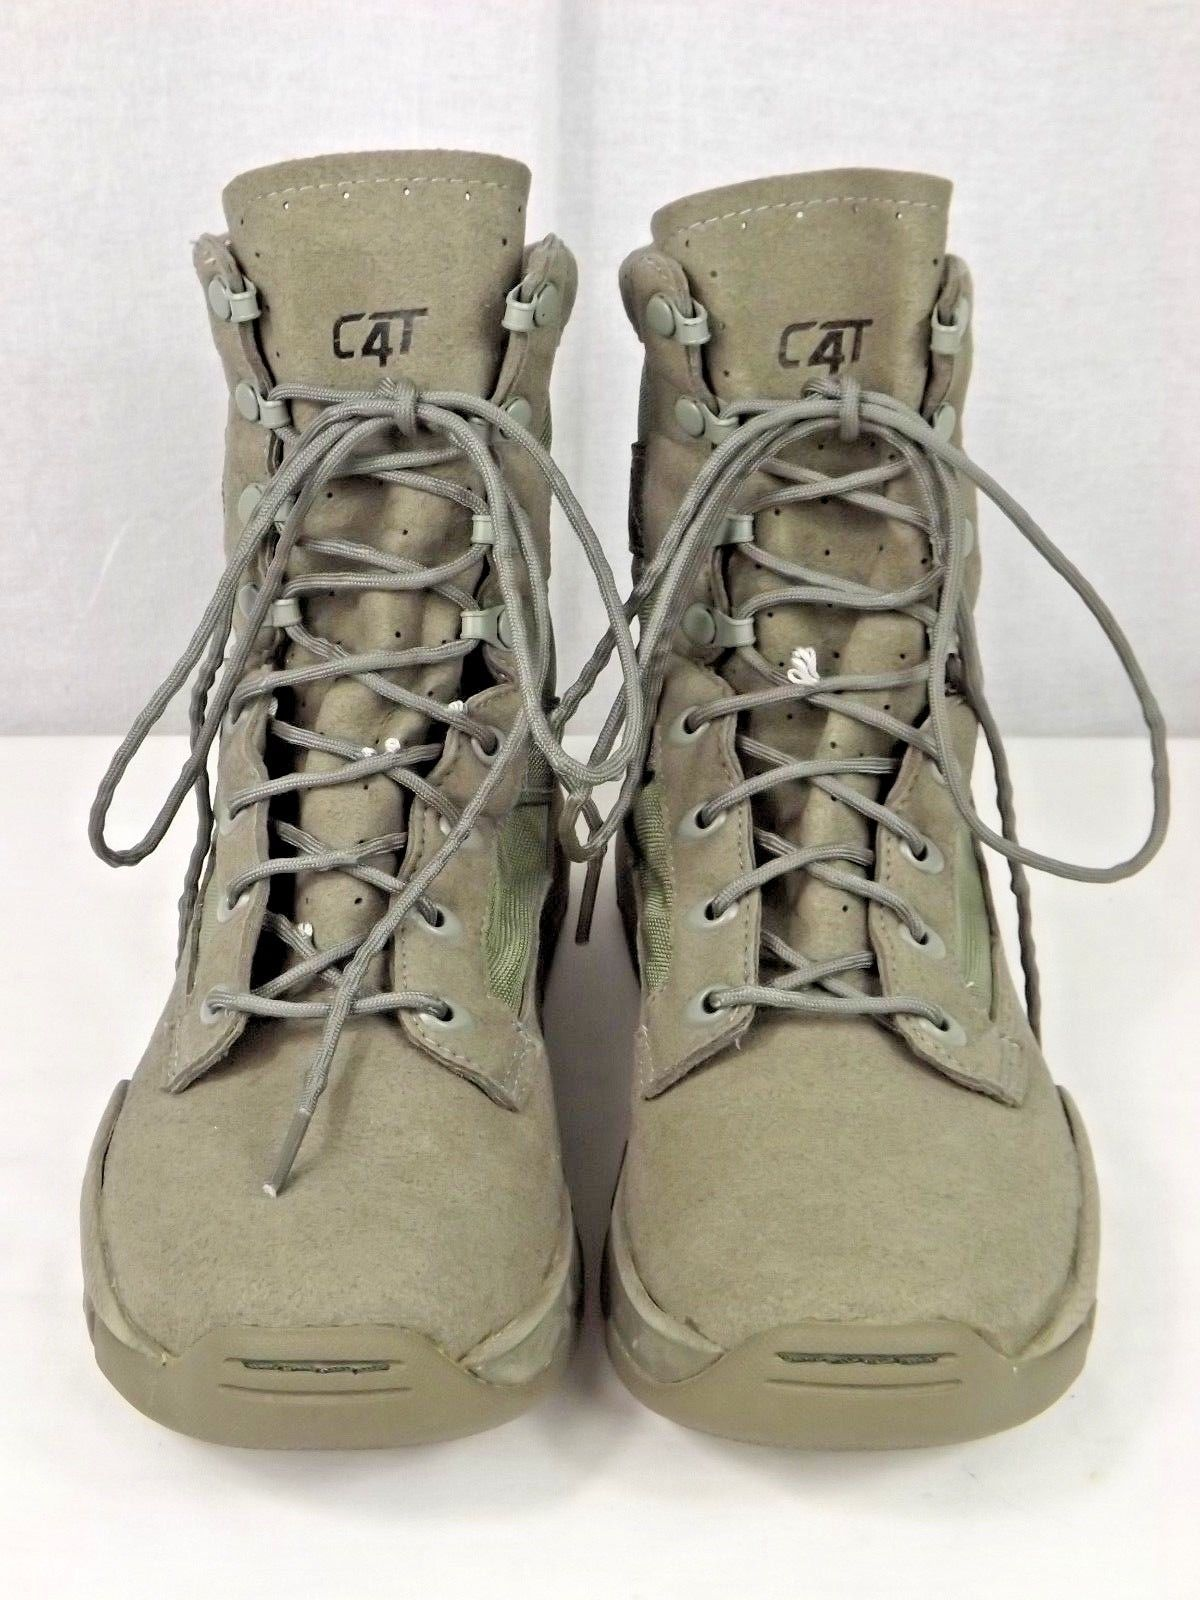 Rocky C4T Women s Boots Size 5.5 W - Model and 50 similar items ce984c40f